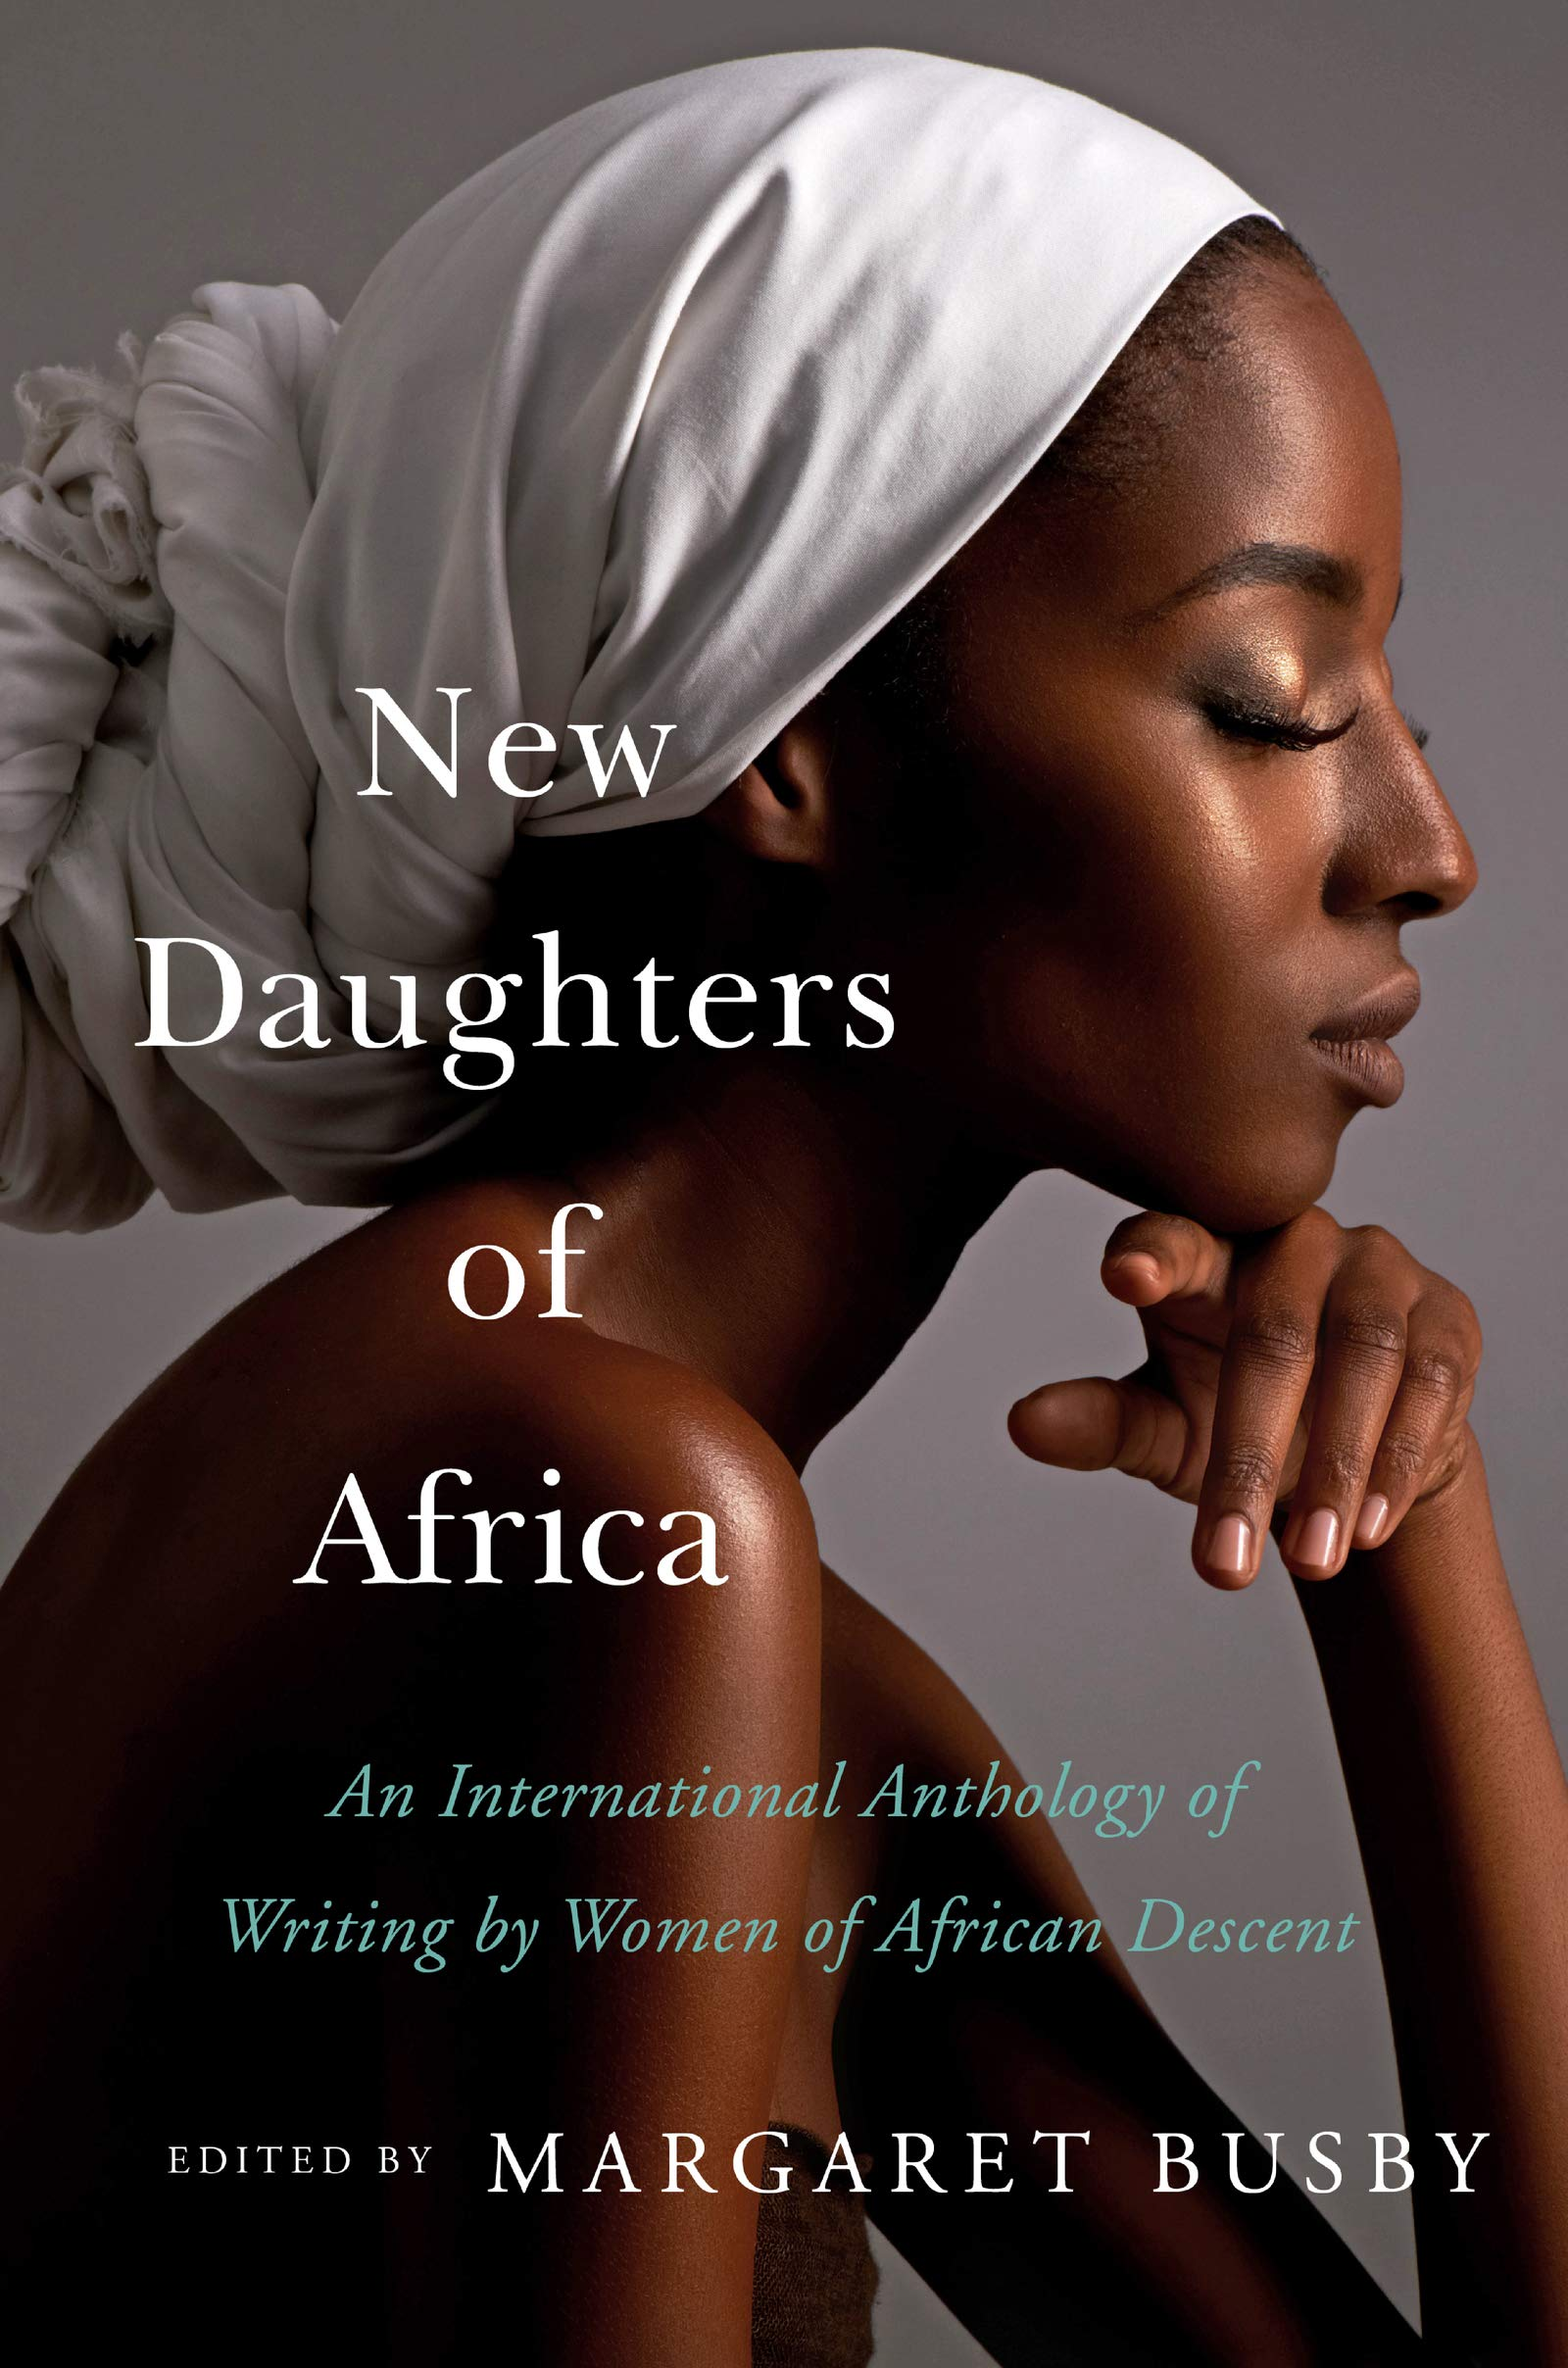 New Daughters of Africa: An International Anthology of Writing by Women of African Descent: Amazon.es: Margaret Busby: Libros en idiomas extranjeros